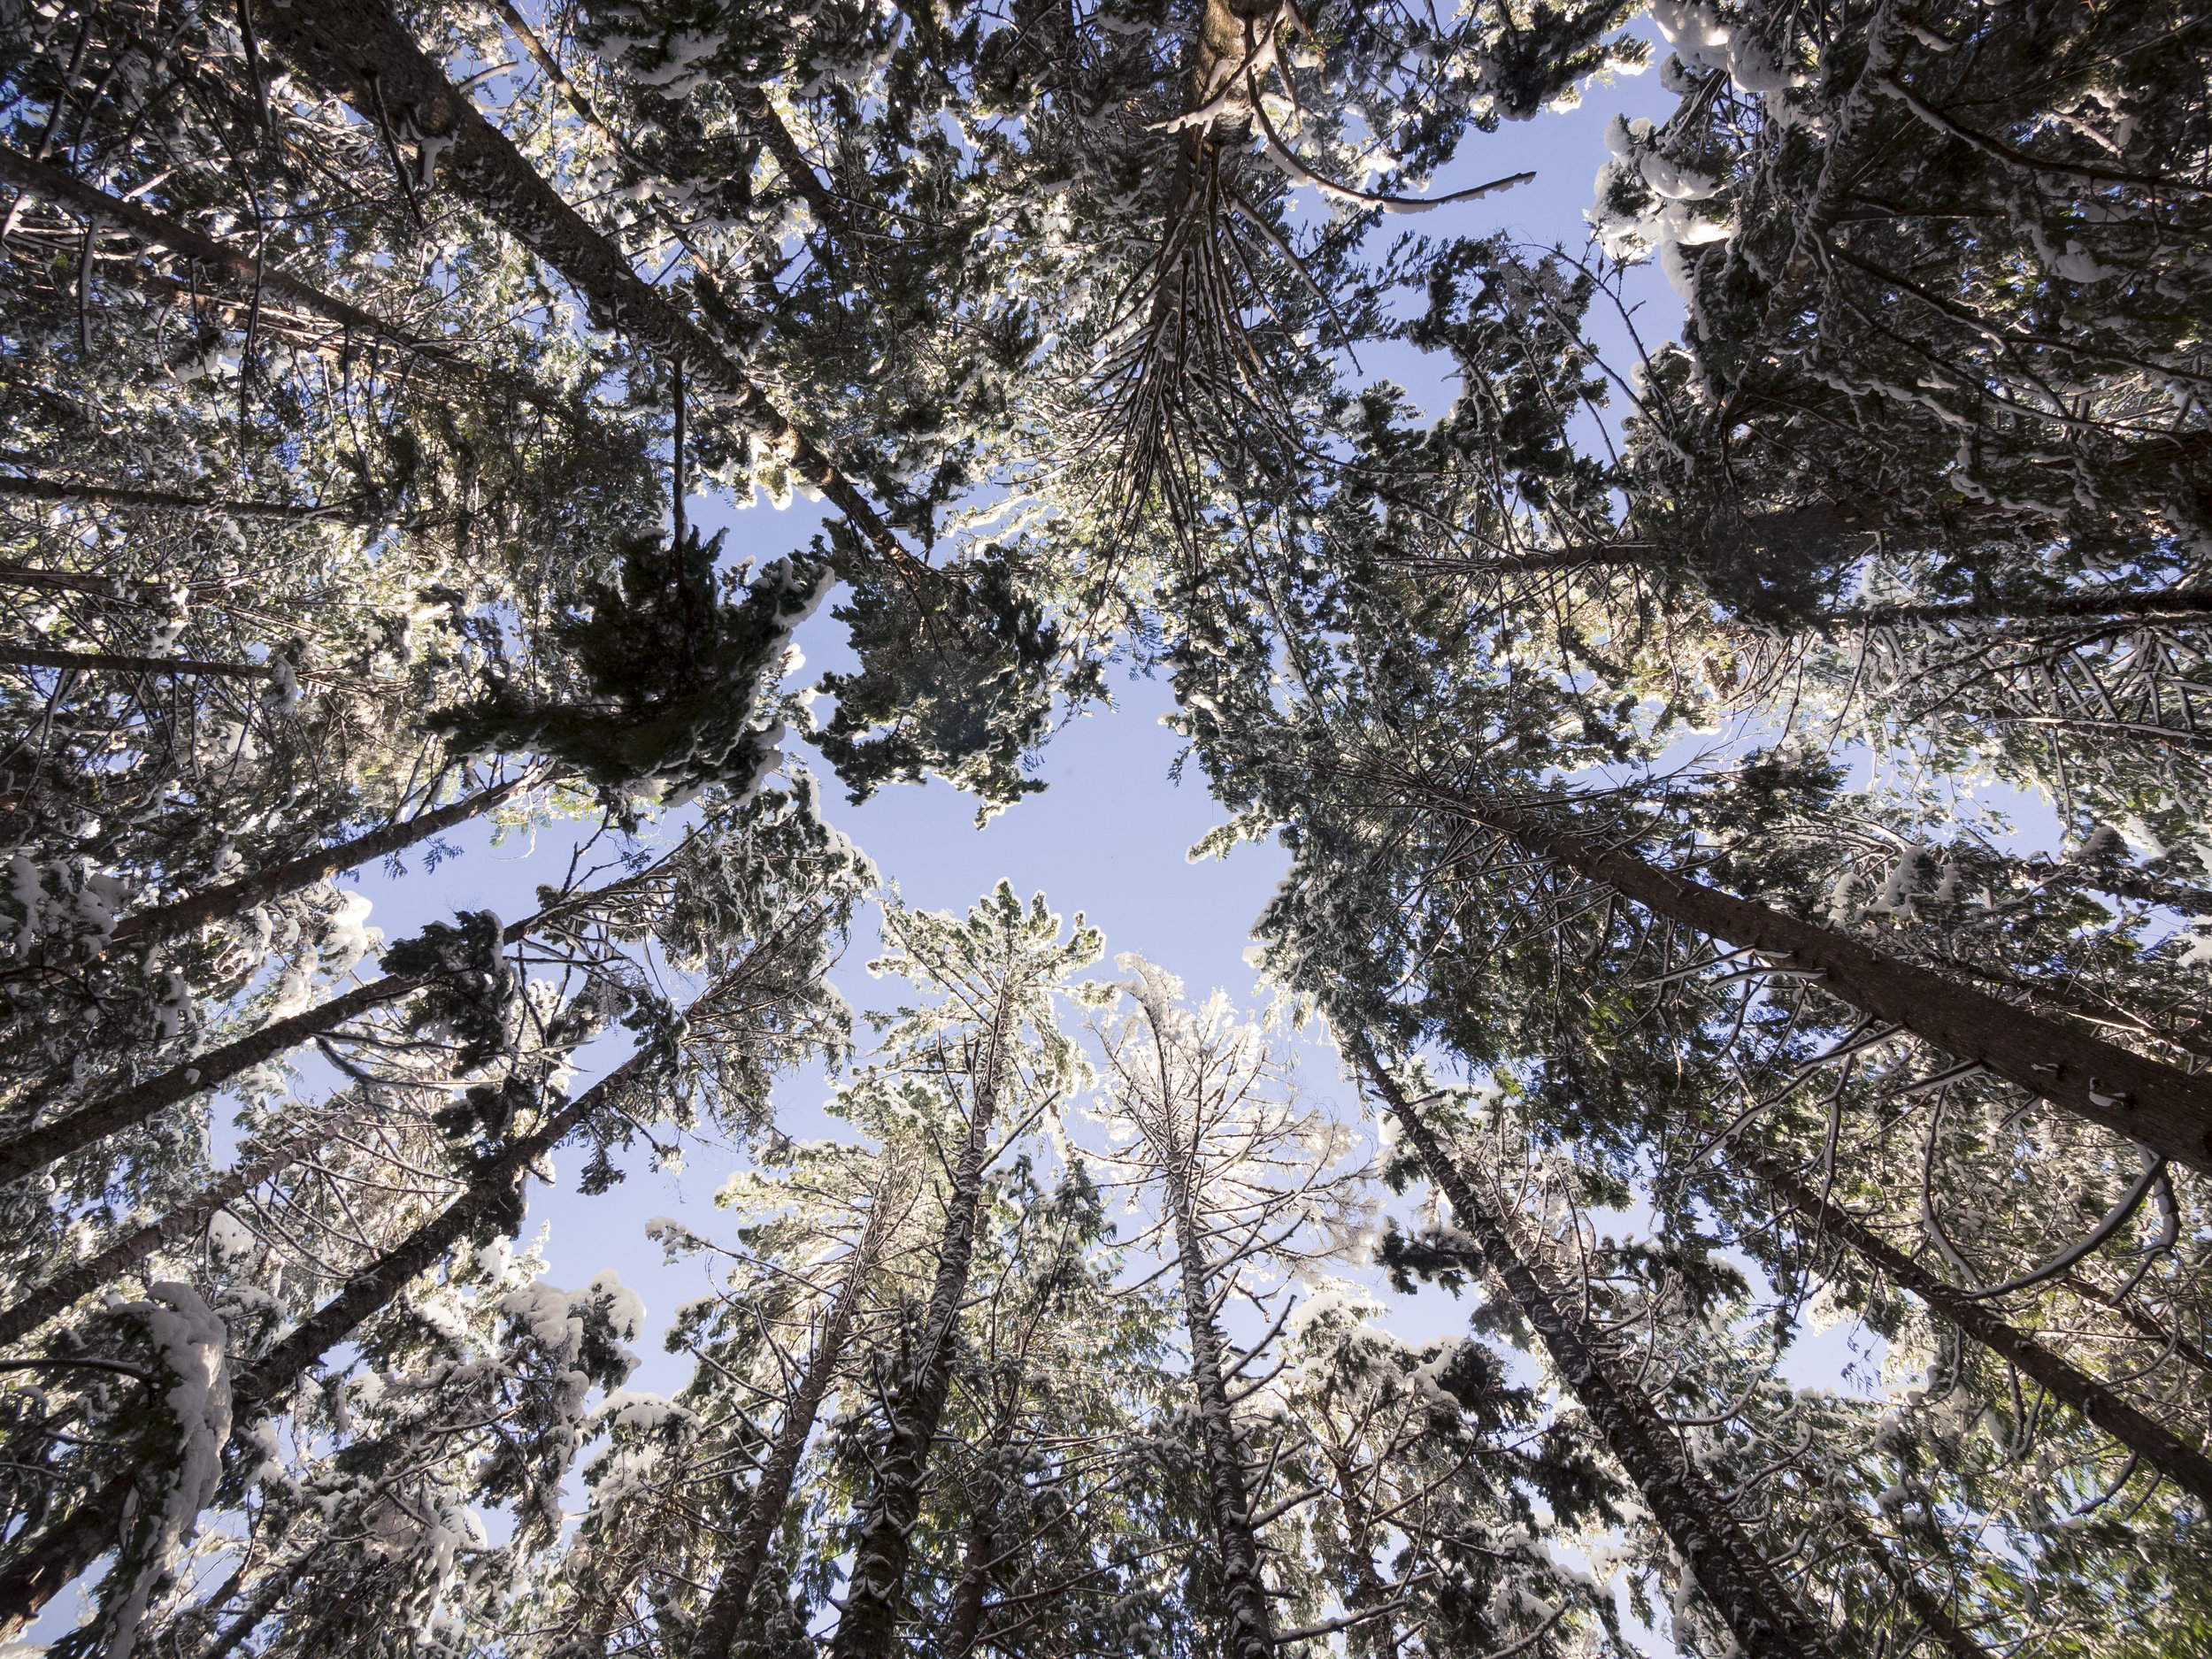 Looking Up to Blue Sky Framed by Snow Covered Forest Tree Tops